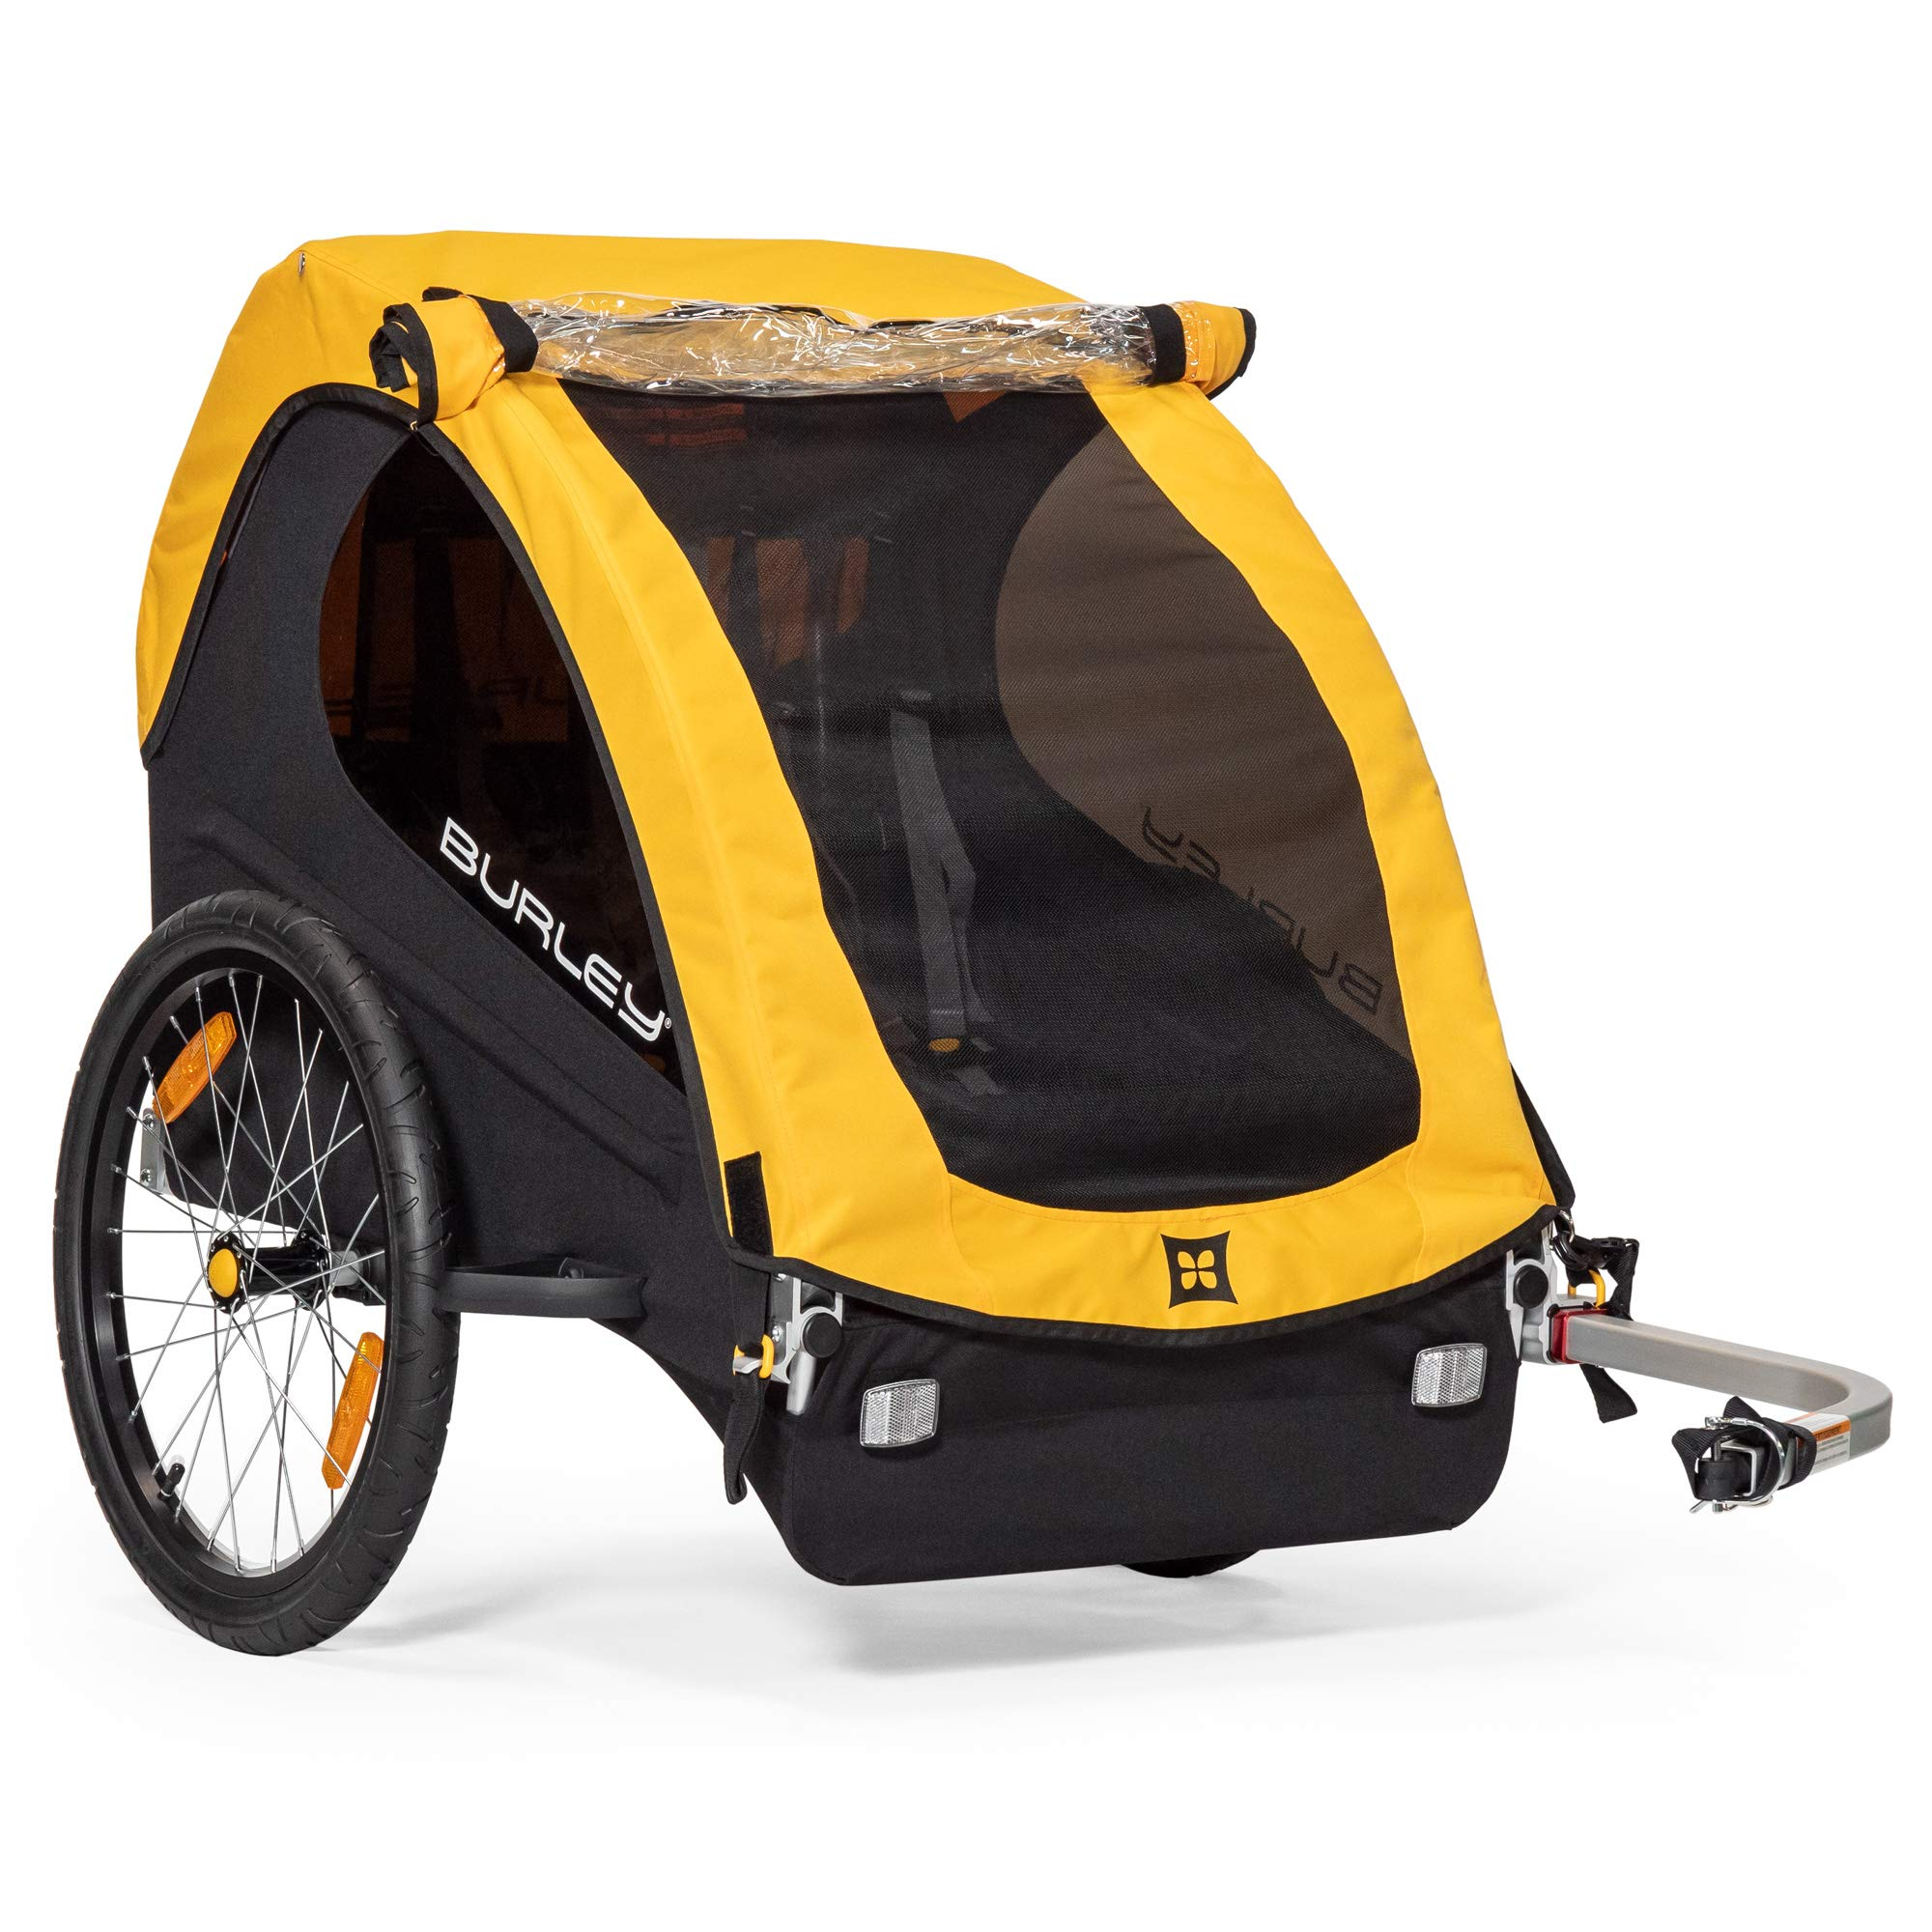 Burley Design Bike Trailer Yellow